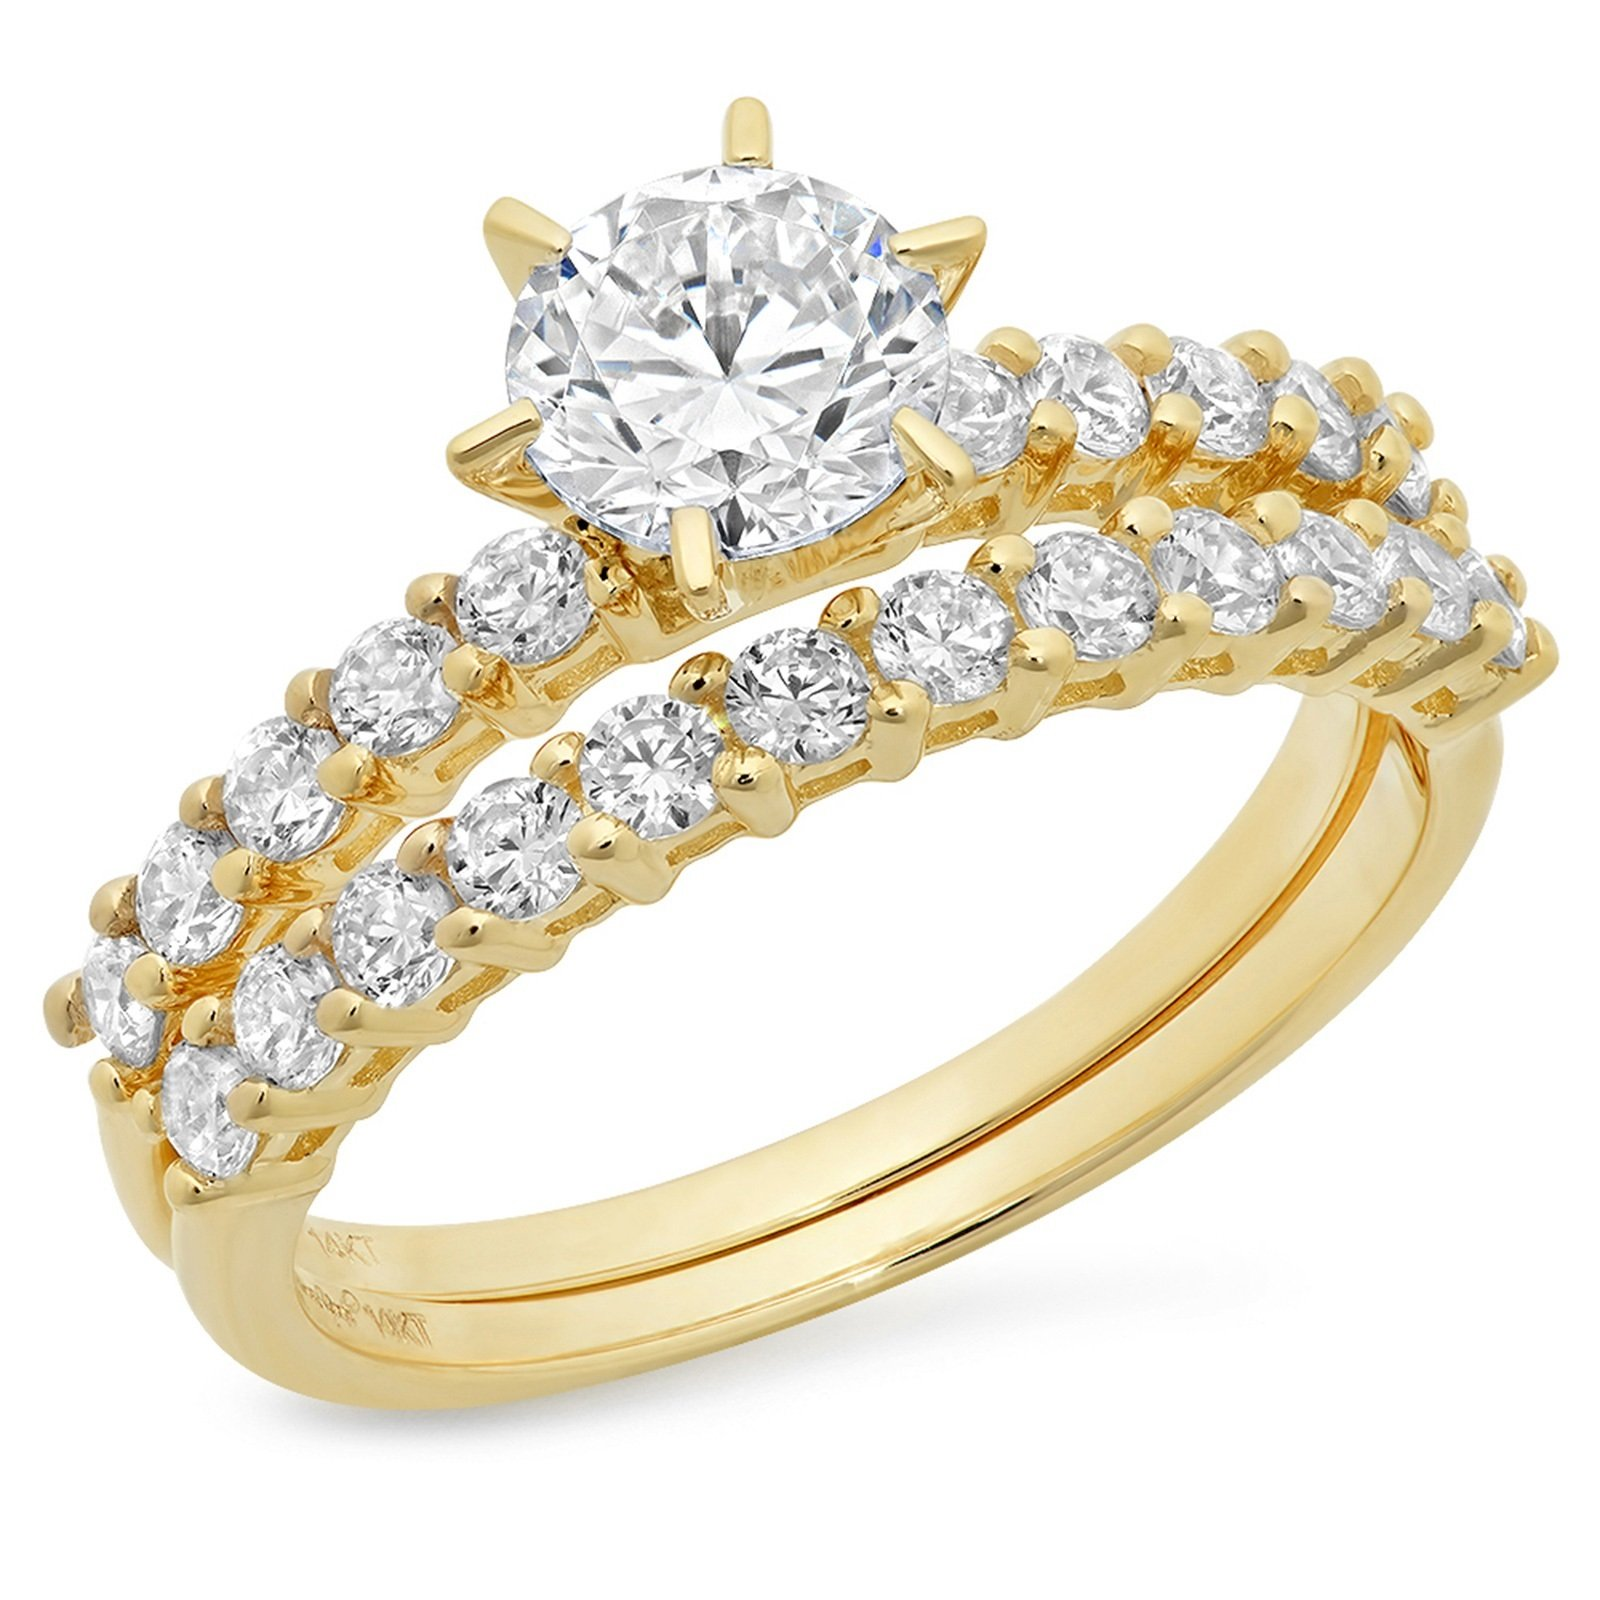 Clara Pucci 3.1 CT Round Cut Pave Halo Bridal Engagement Wedding Ring band set 14k Yellow Gold, Size 7